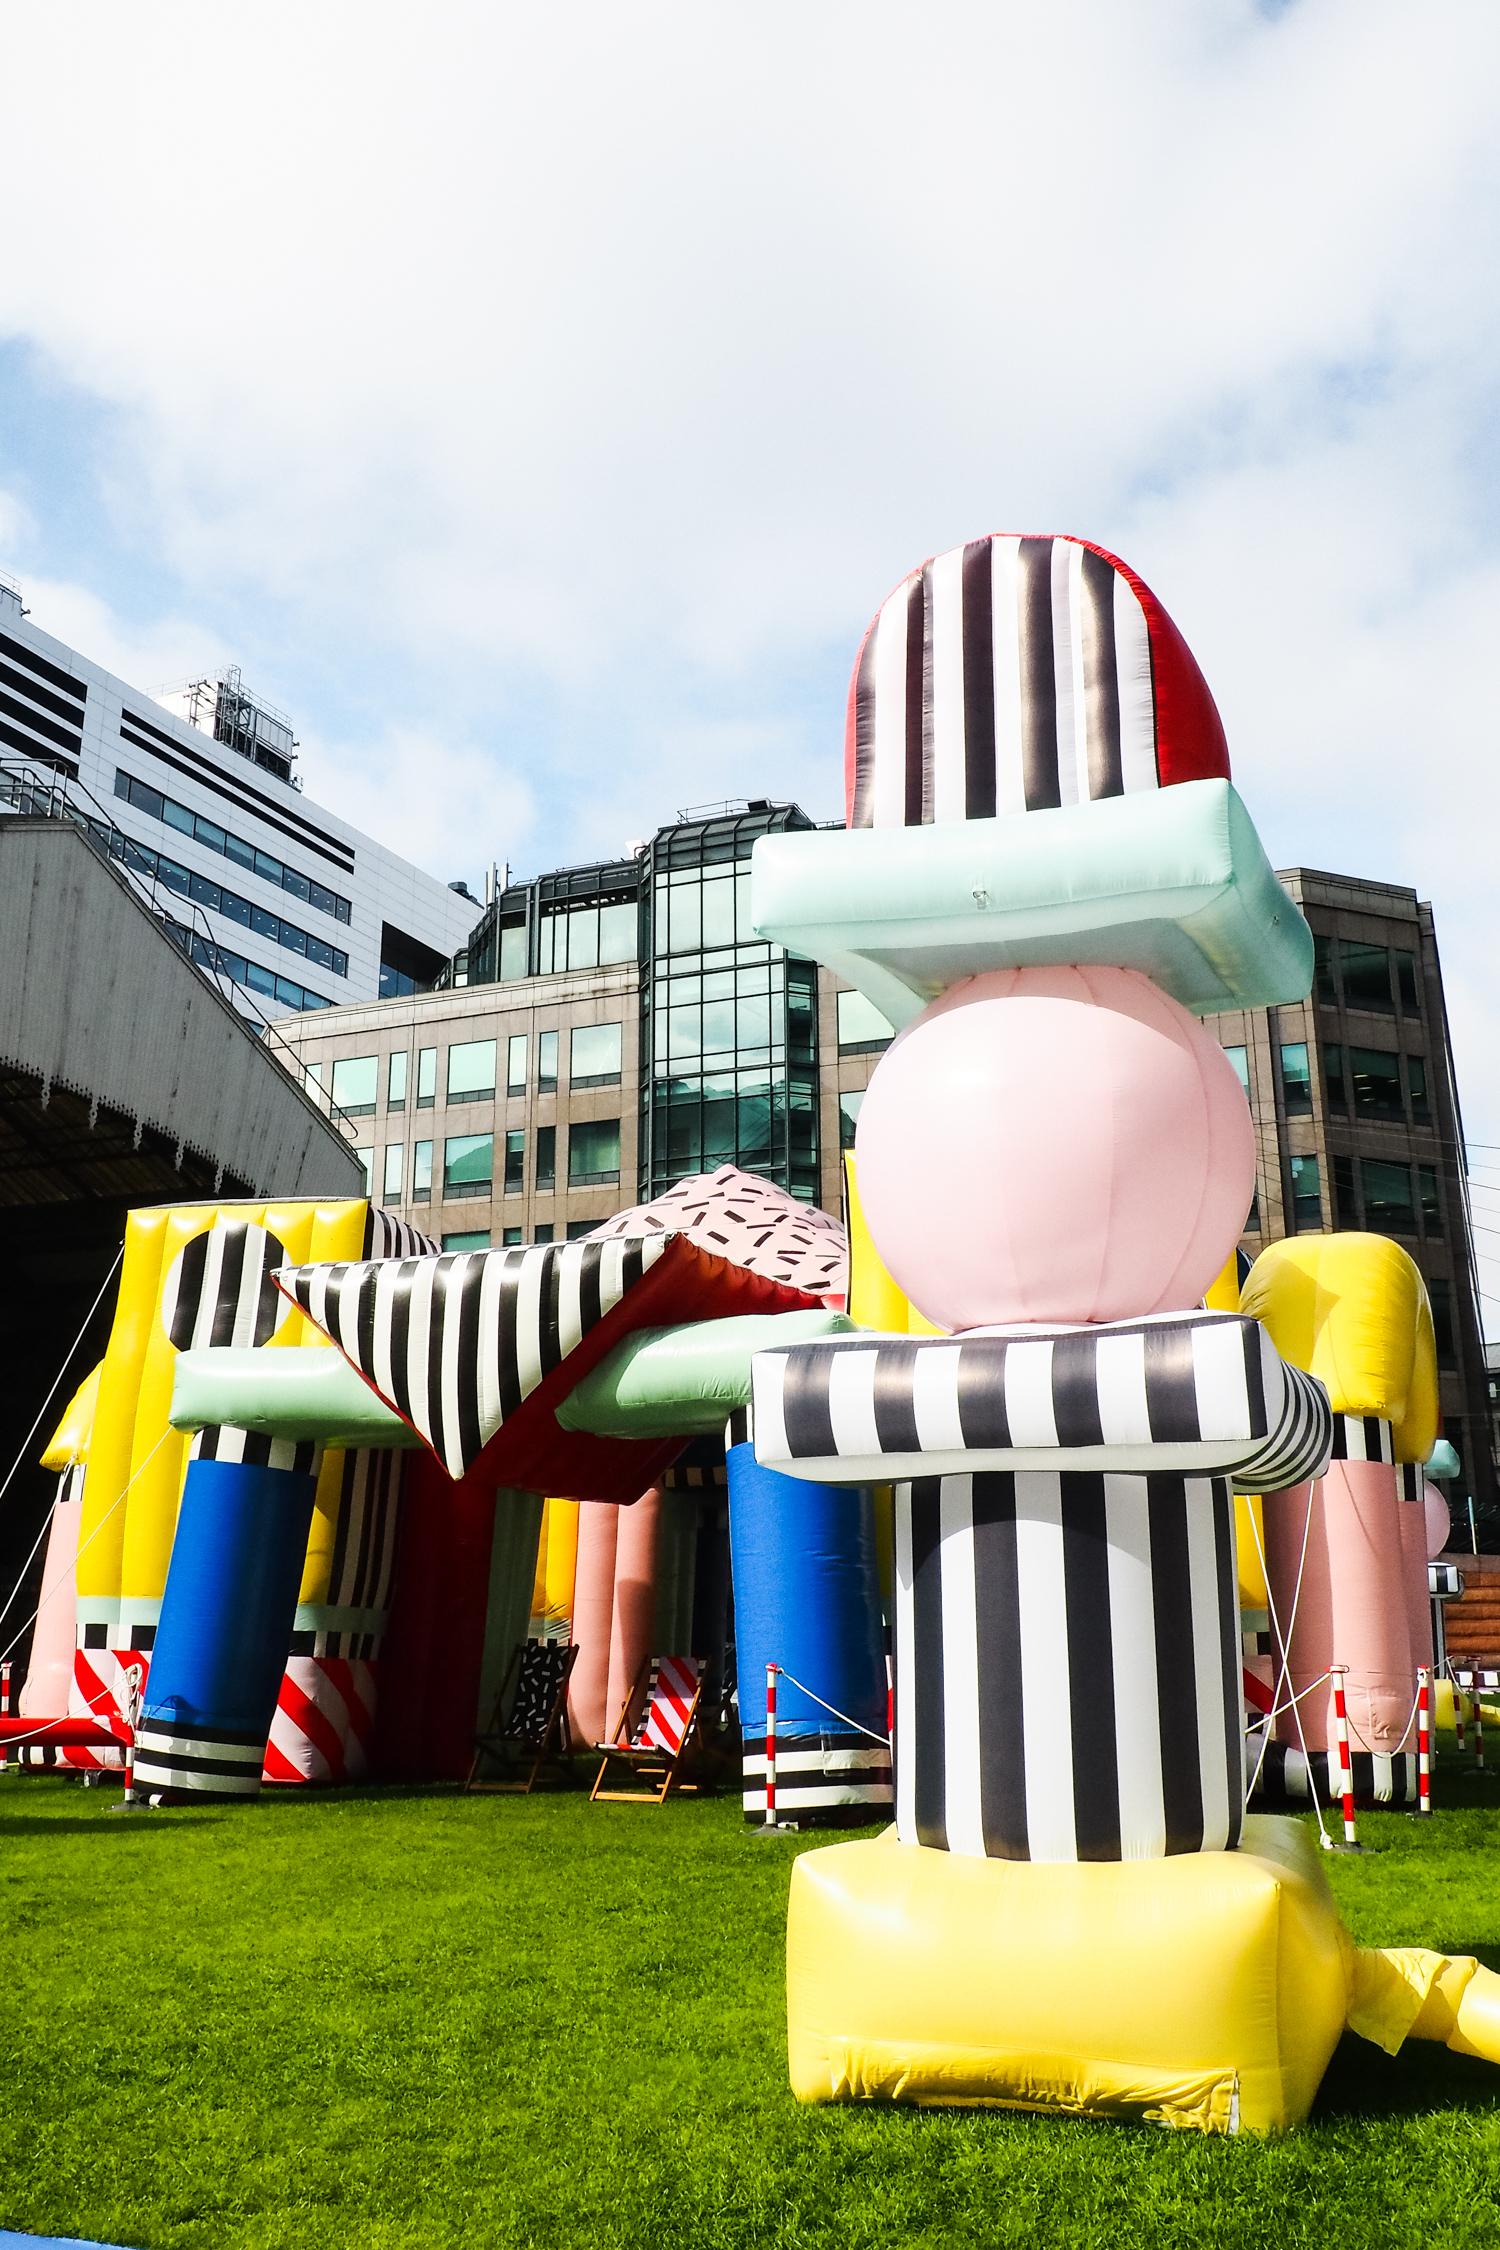 1. villa walala - an inflatable dream land juxtaposed with surrounding city buildings by Camille Walala